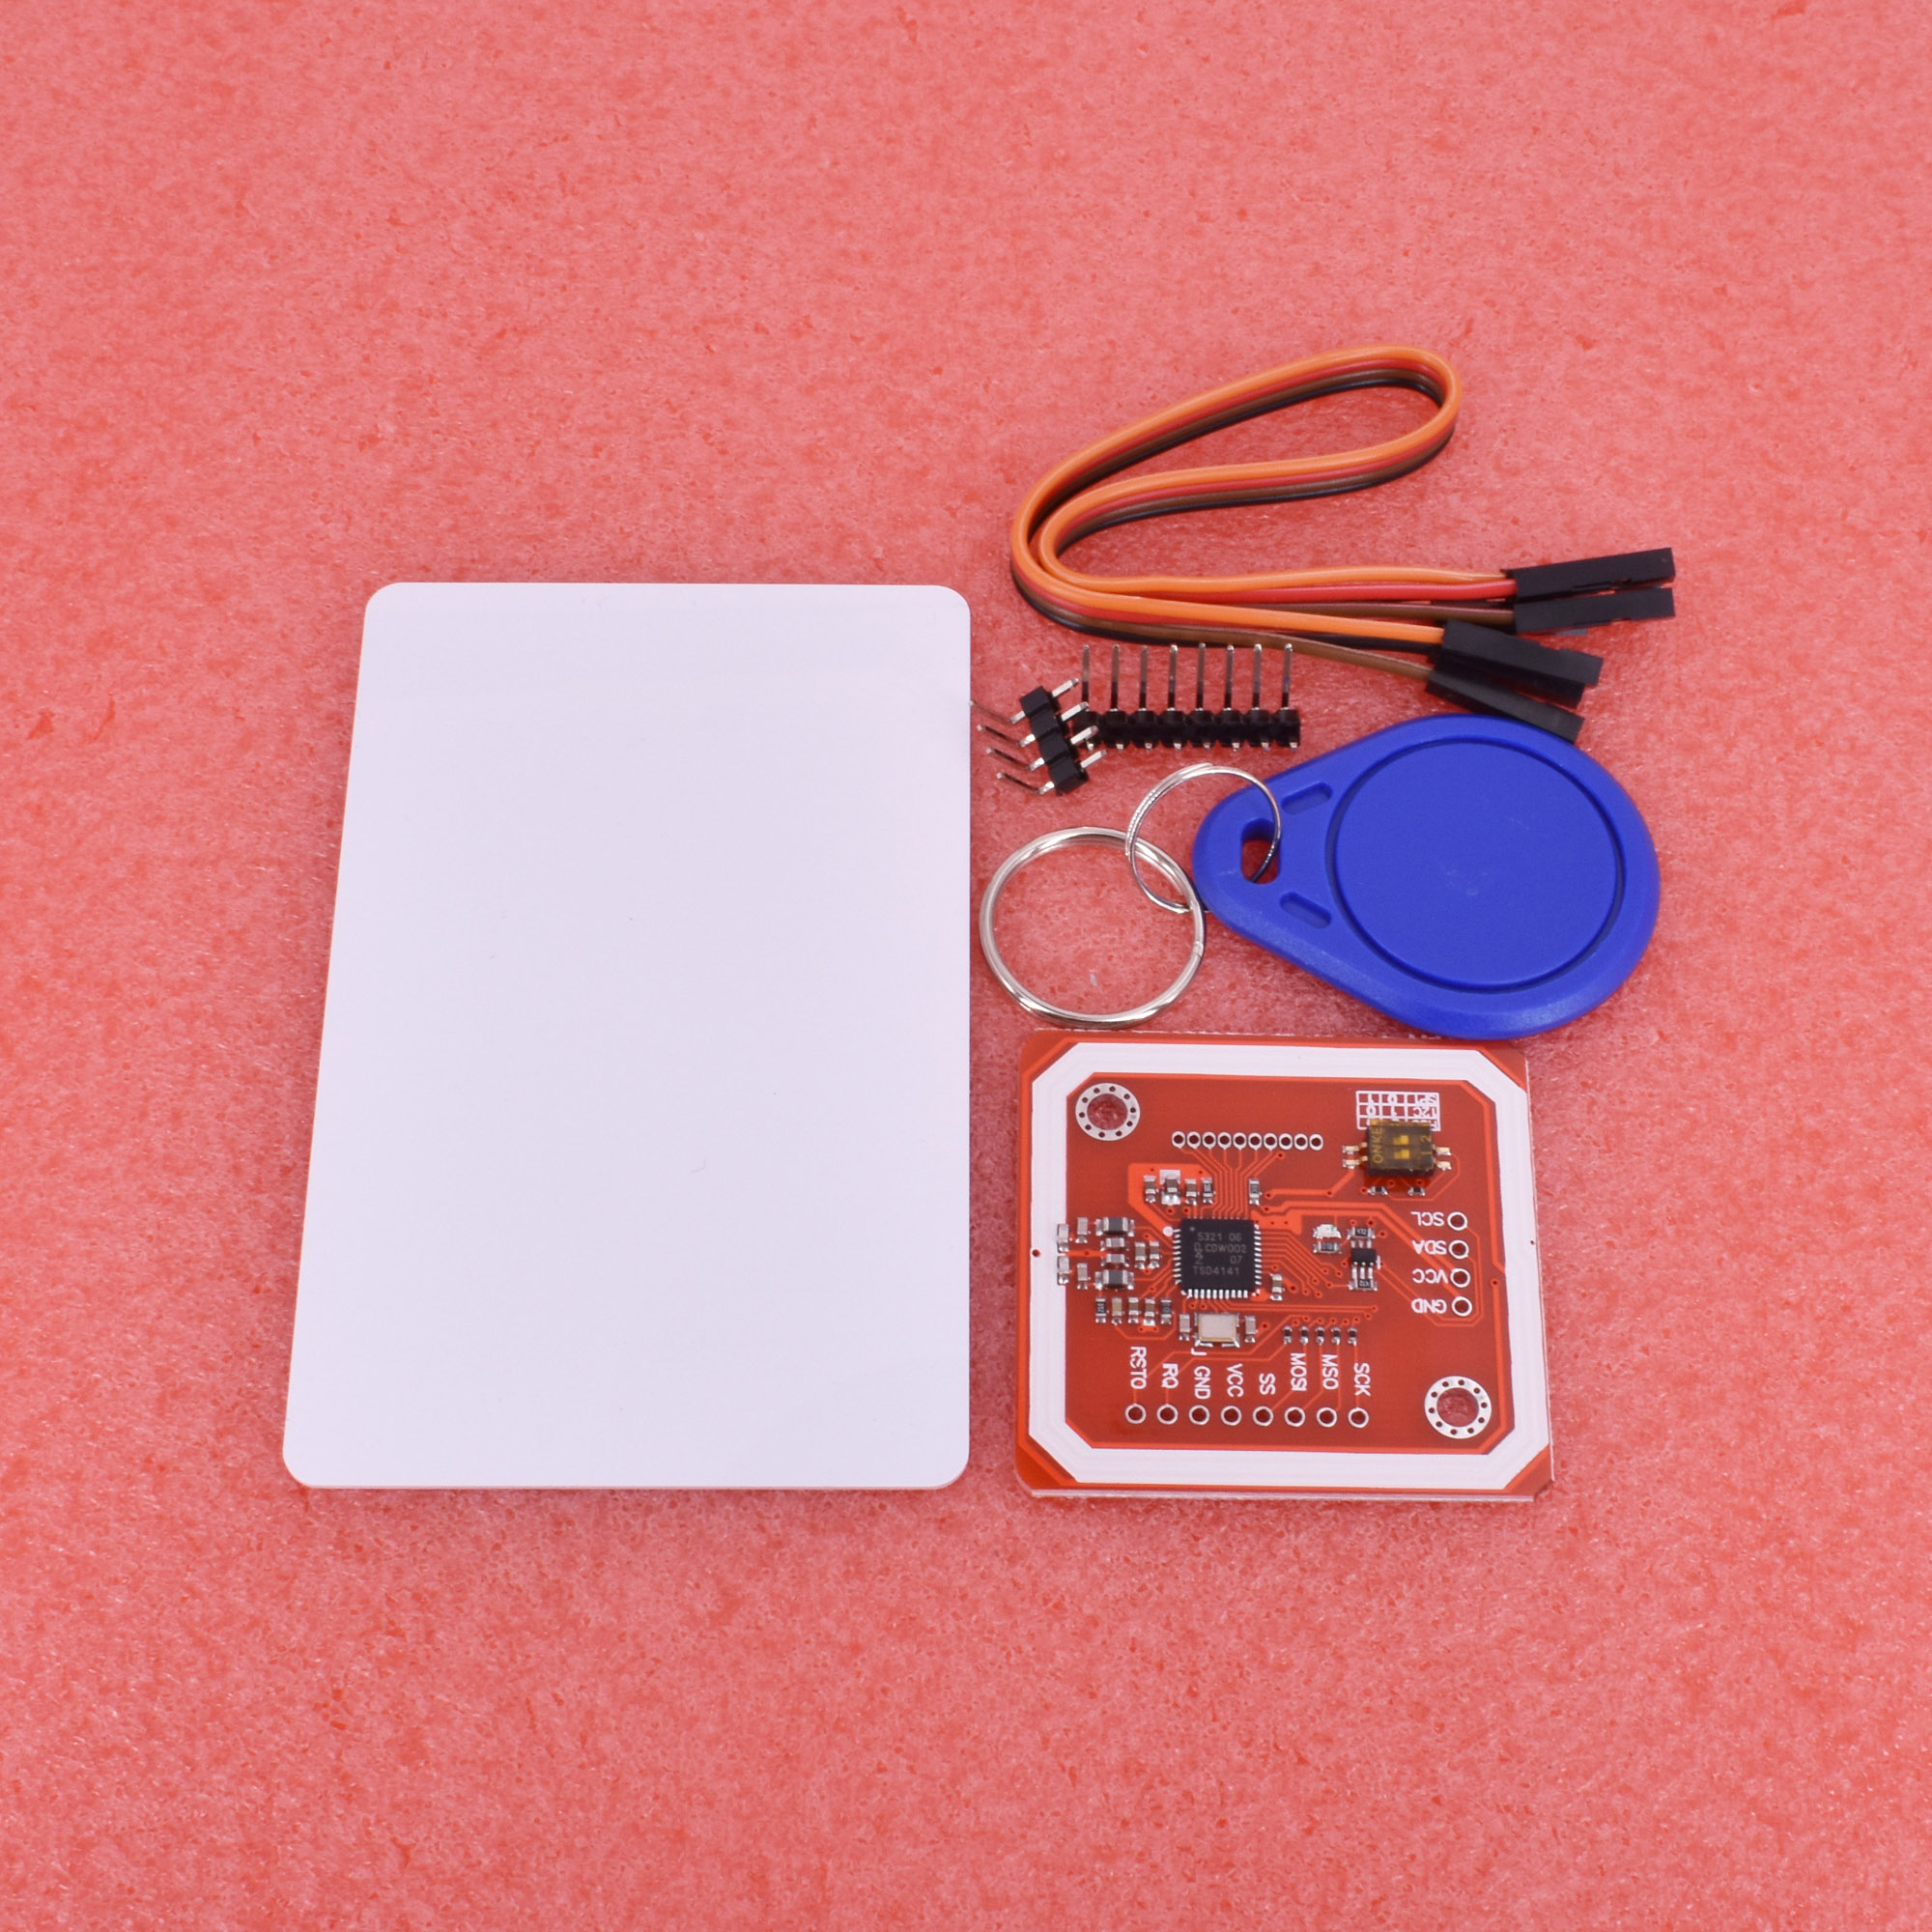 Details about NXP PN532 NFC RFID Module Reader Writer For Arduino Android  Phone V3 Kits BBC